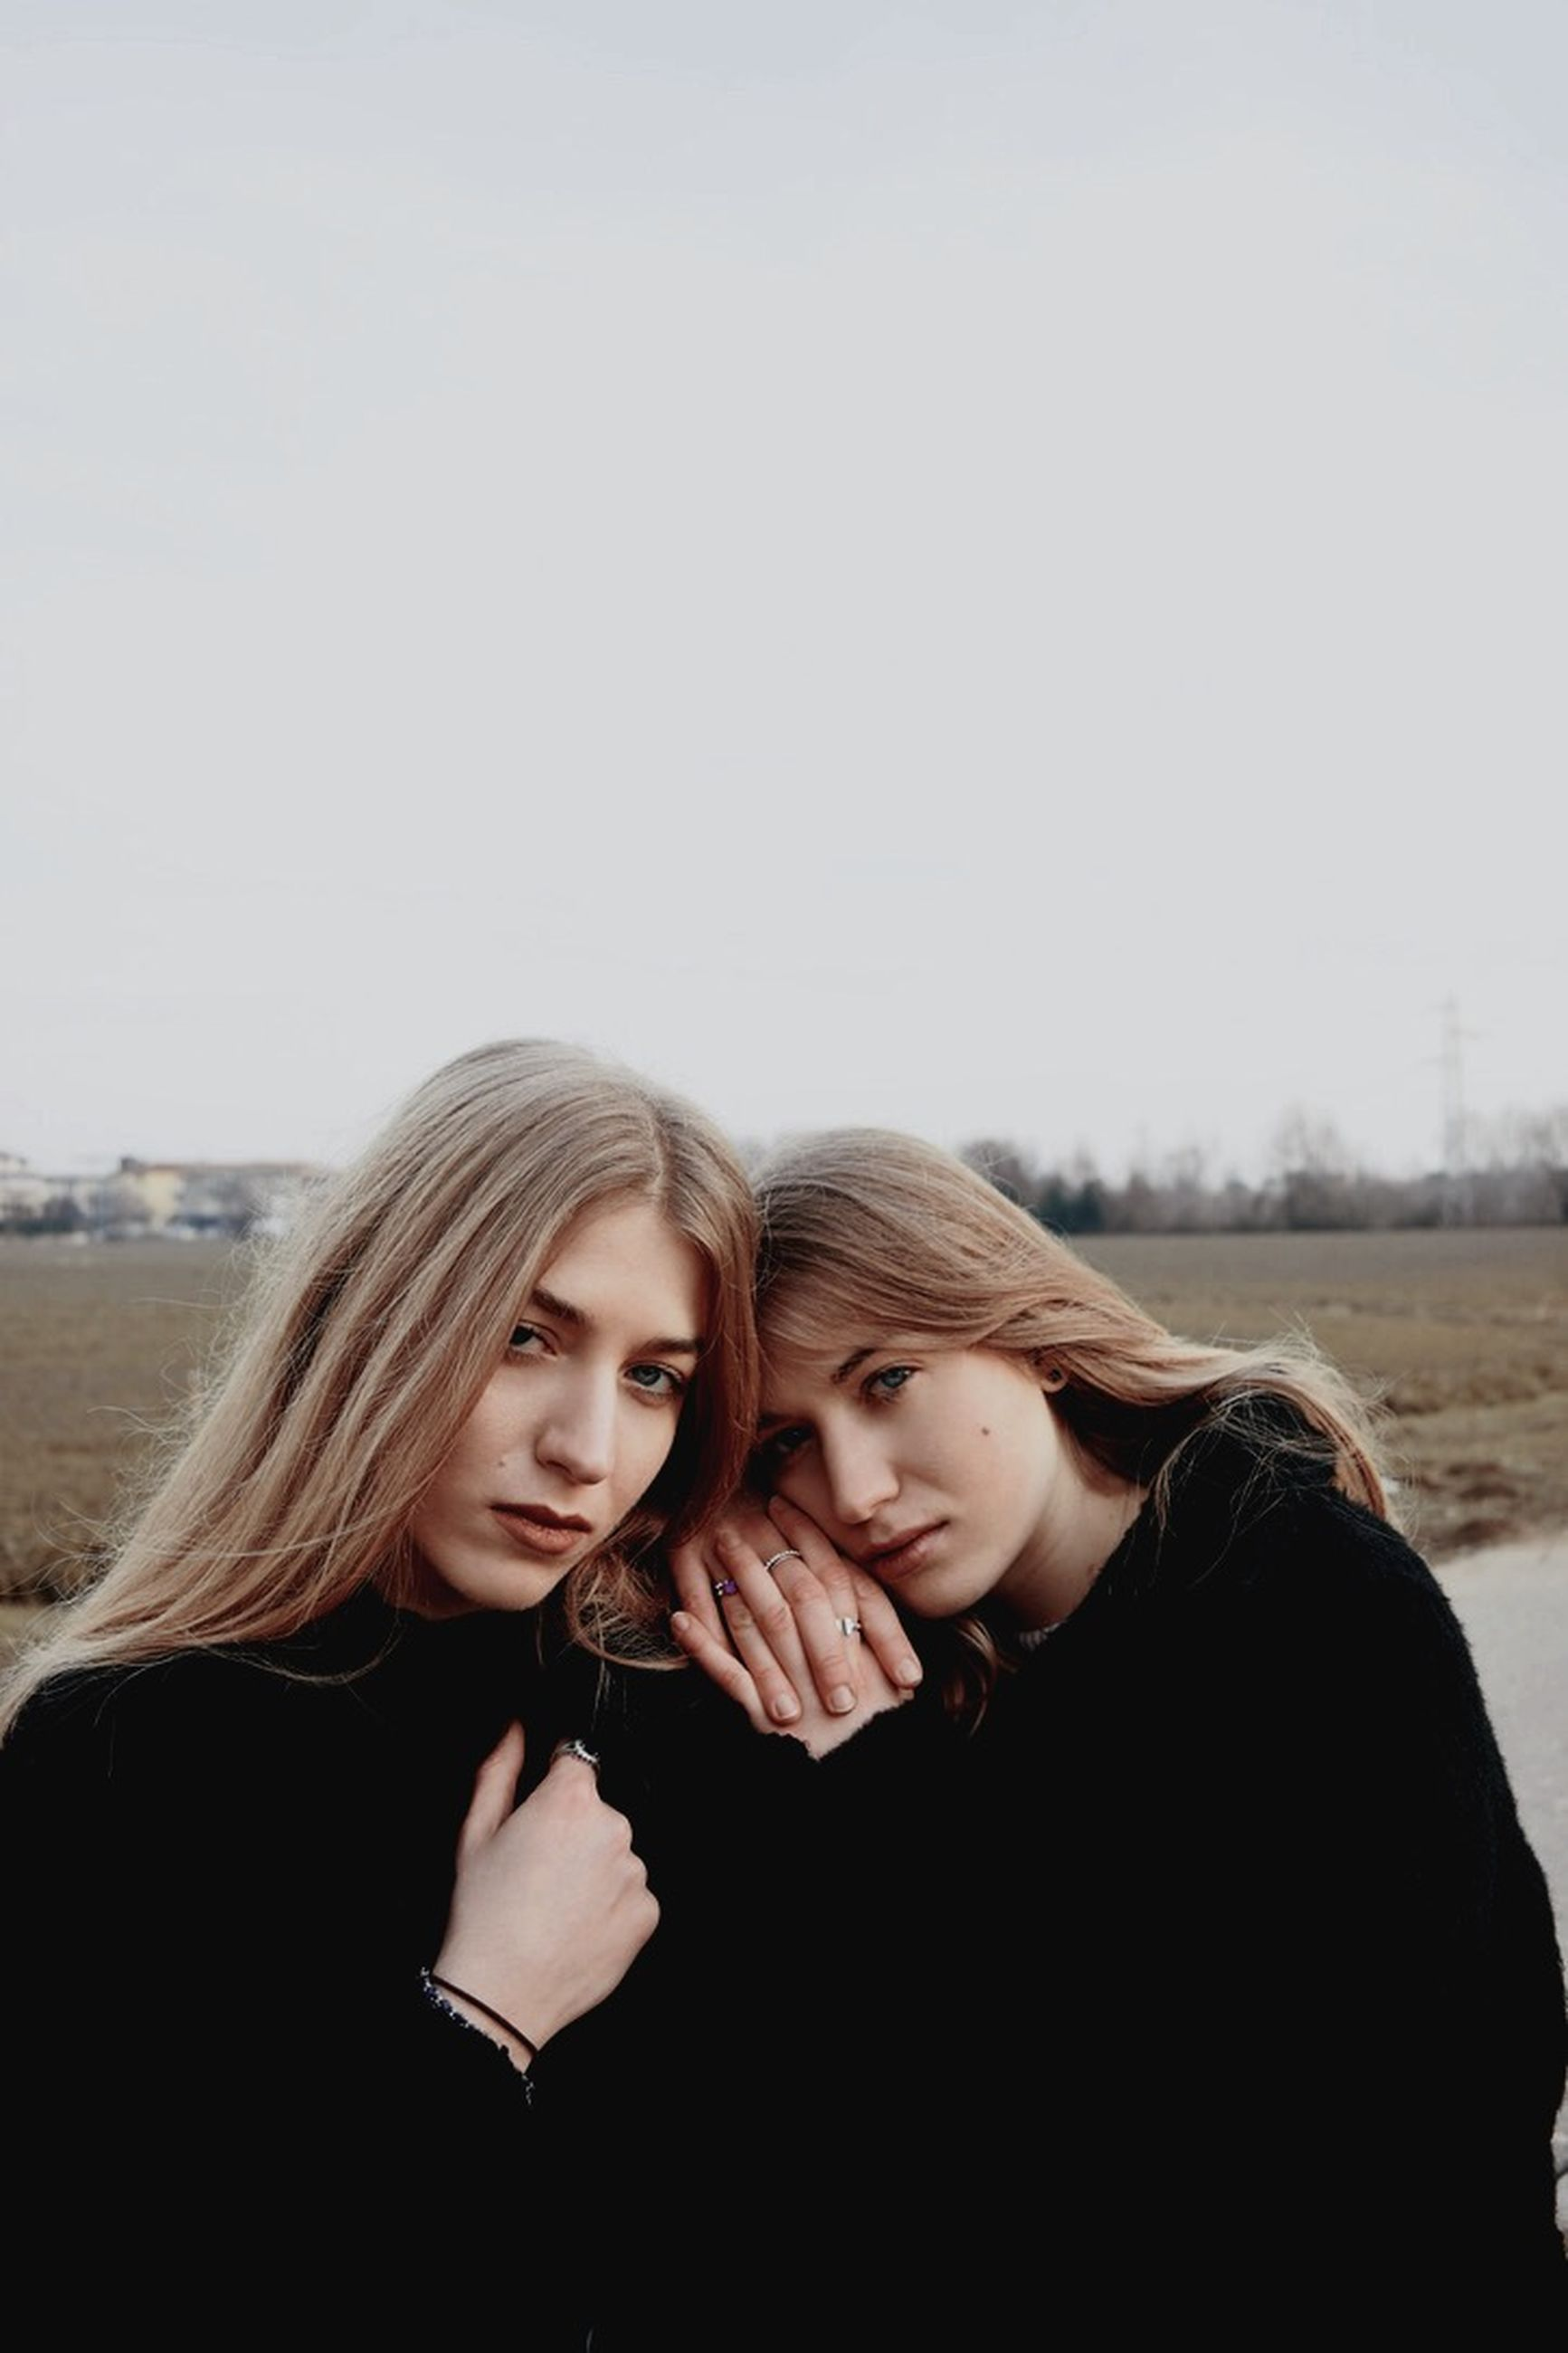 young adult, copy space, young women, women, portrait, hair, bonding, sky, lifestyles, people, togetherness, emotion, headshot, two people, clear sky, leisure activity, long hair, blond hair, nature, hairstyle, positive emotion, teenager, beautiful woman, contemplation, couple - relationship